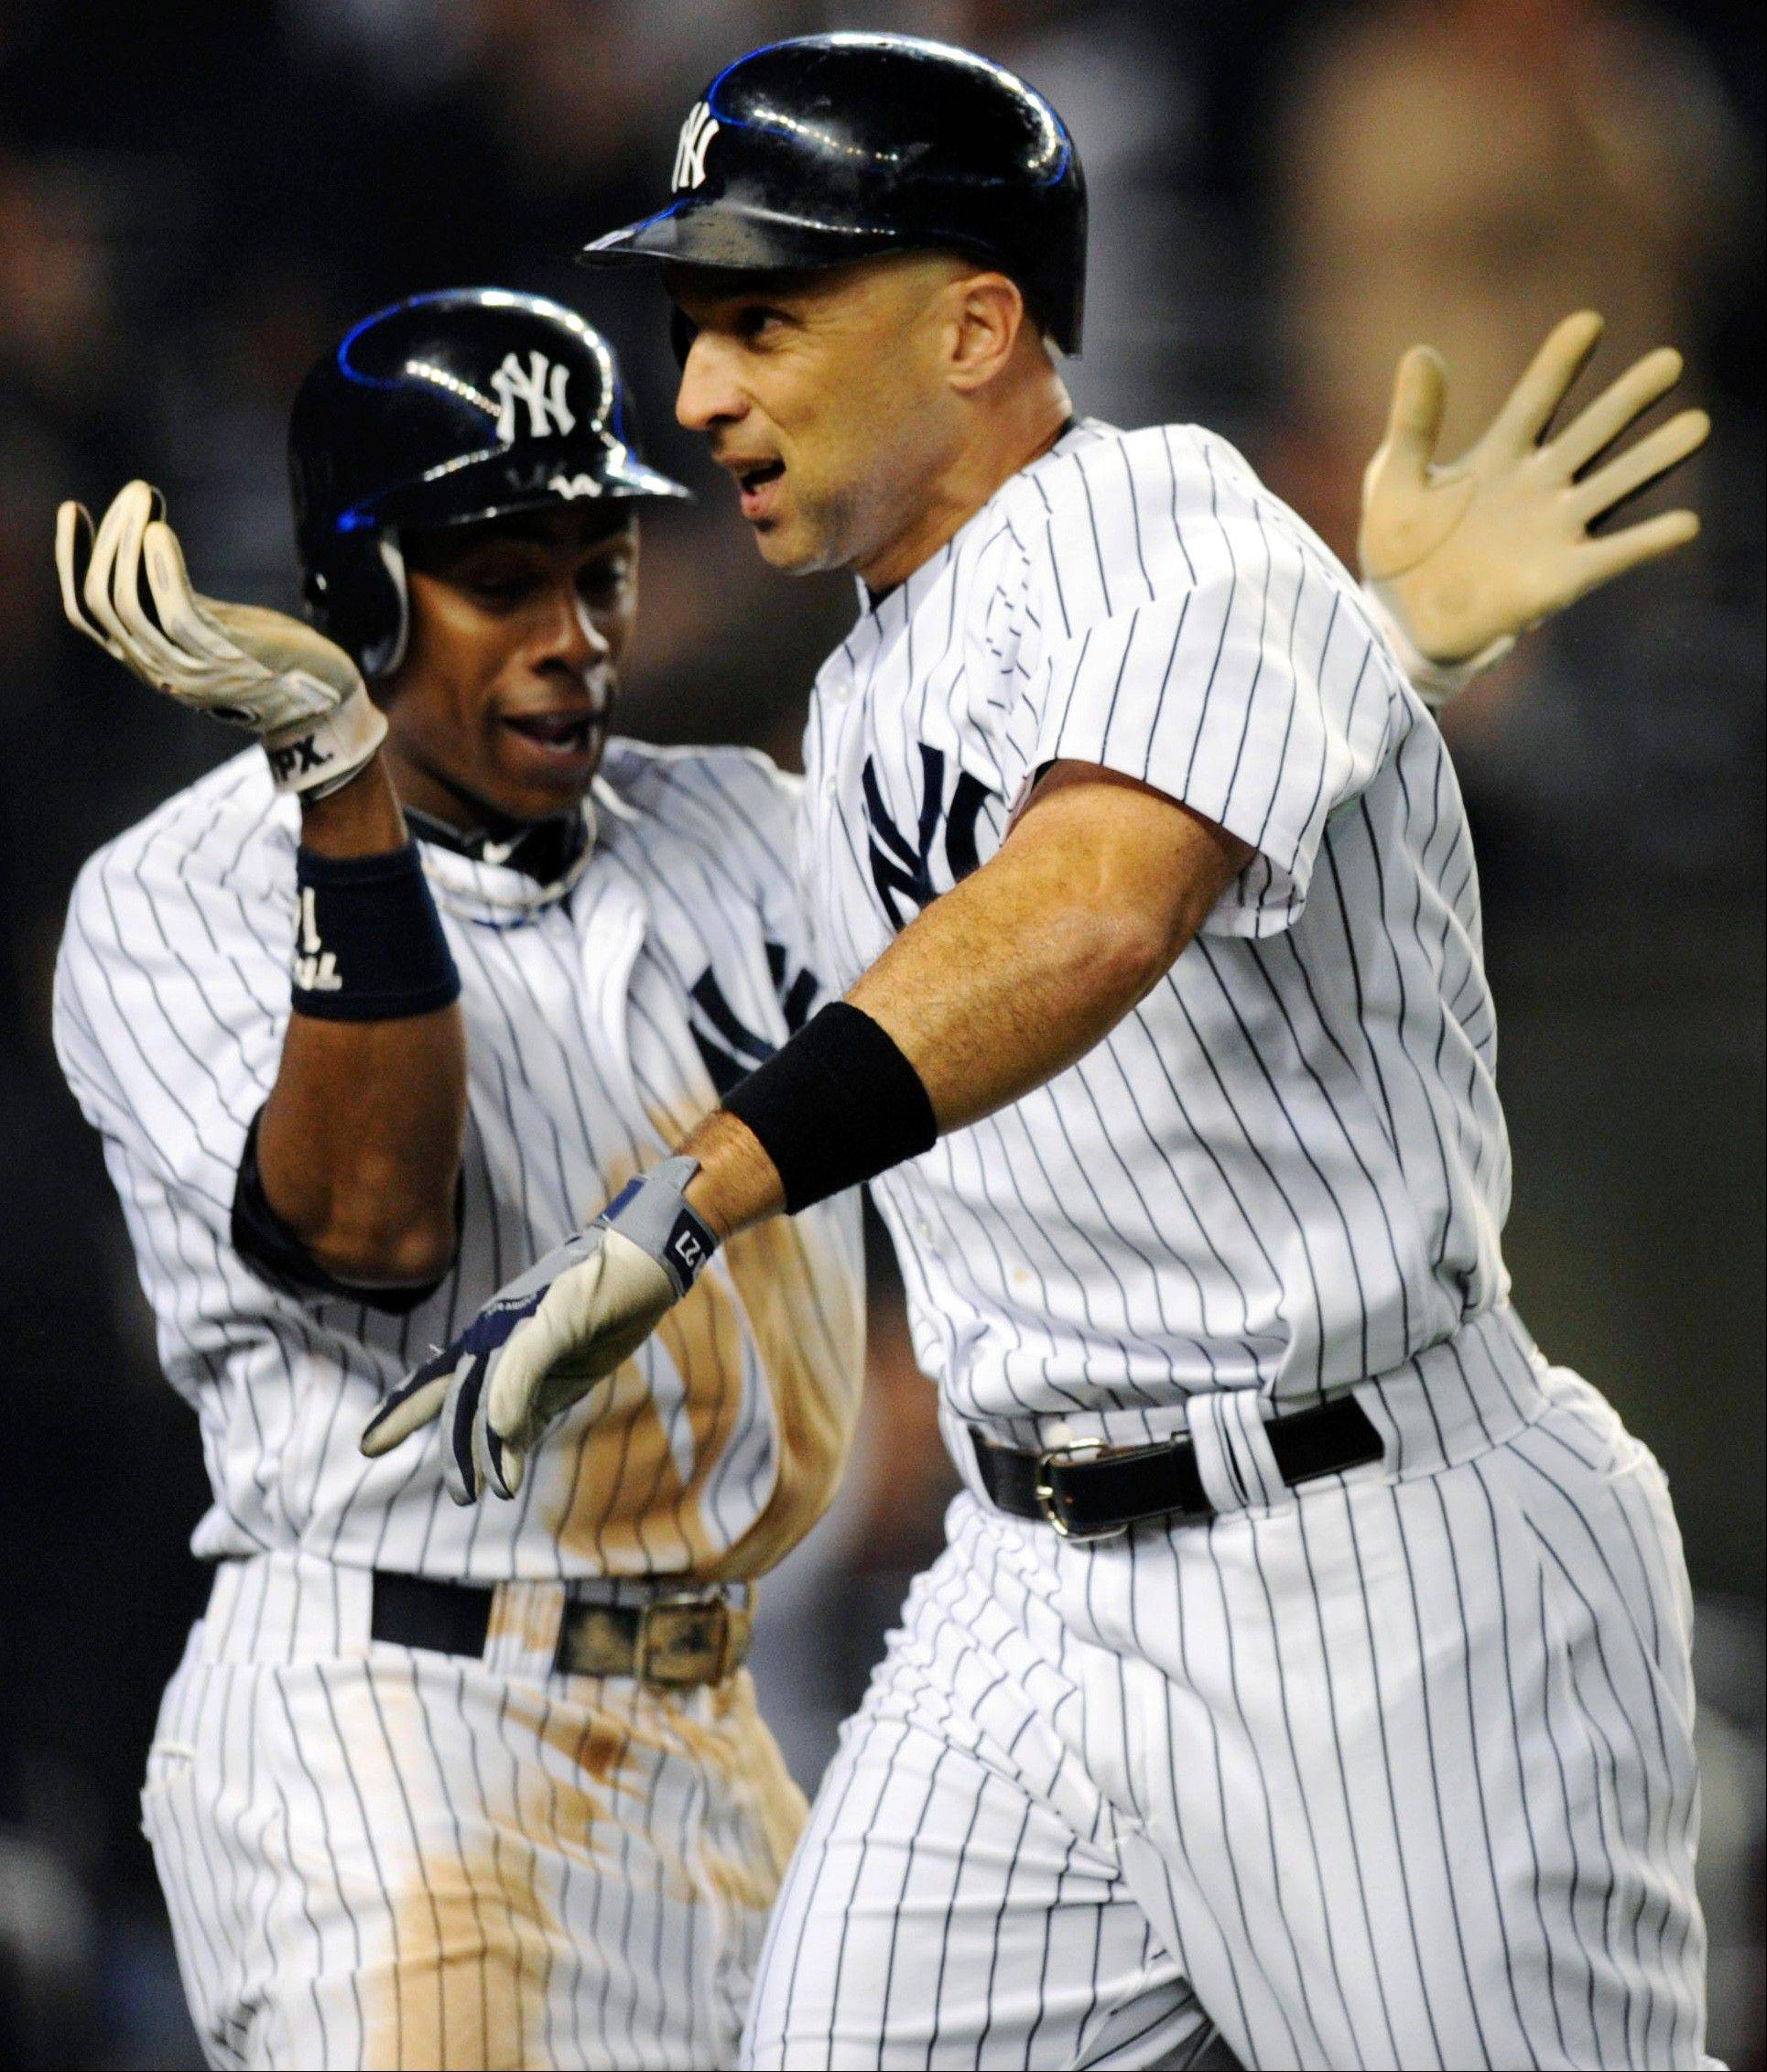 The Yankees� Raul Ibanez, right, is congratulated by Curtis Granderson after hitting a two-run home run against the Boston Red Sox during the ninth inning Tuesday in New York. The Yankees won 4-3 in the 12th inning.